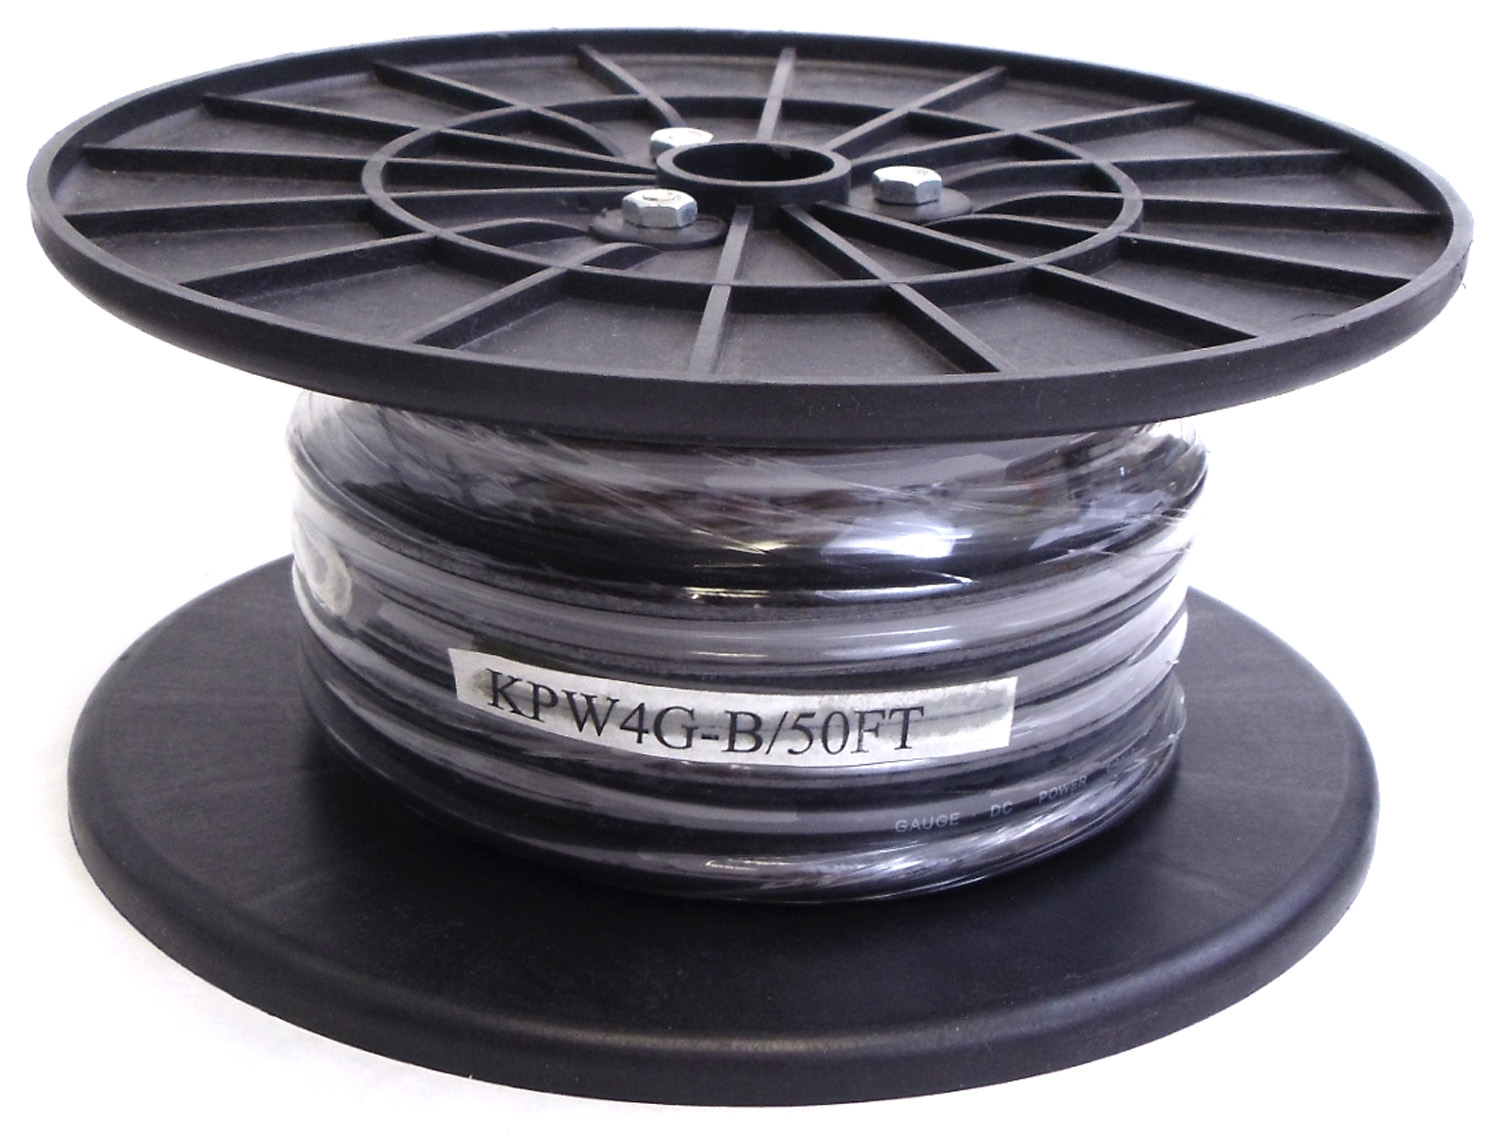 KPW4G-B - Kalibur 50 Foot Spool Of 4 Gauge Black Power Wire